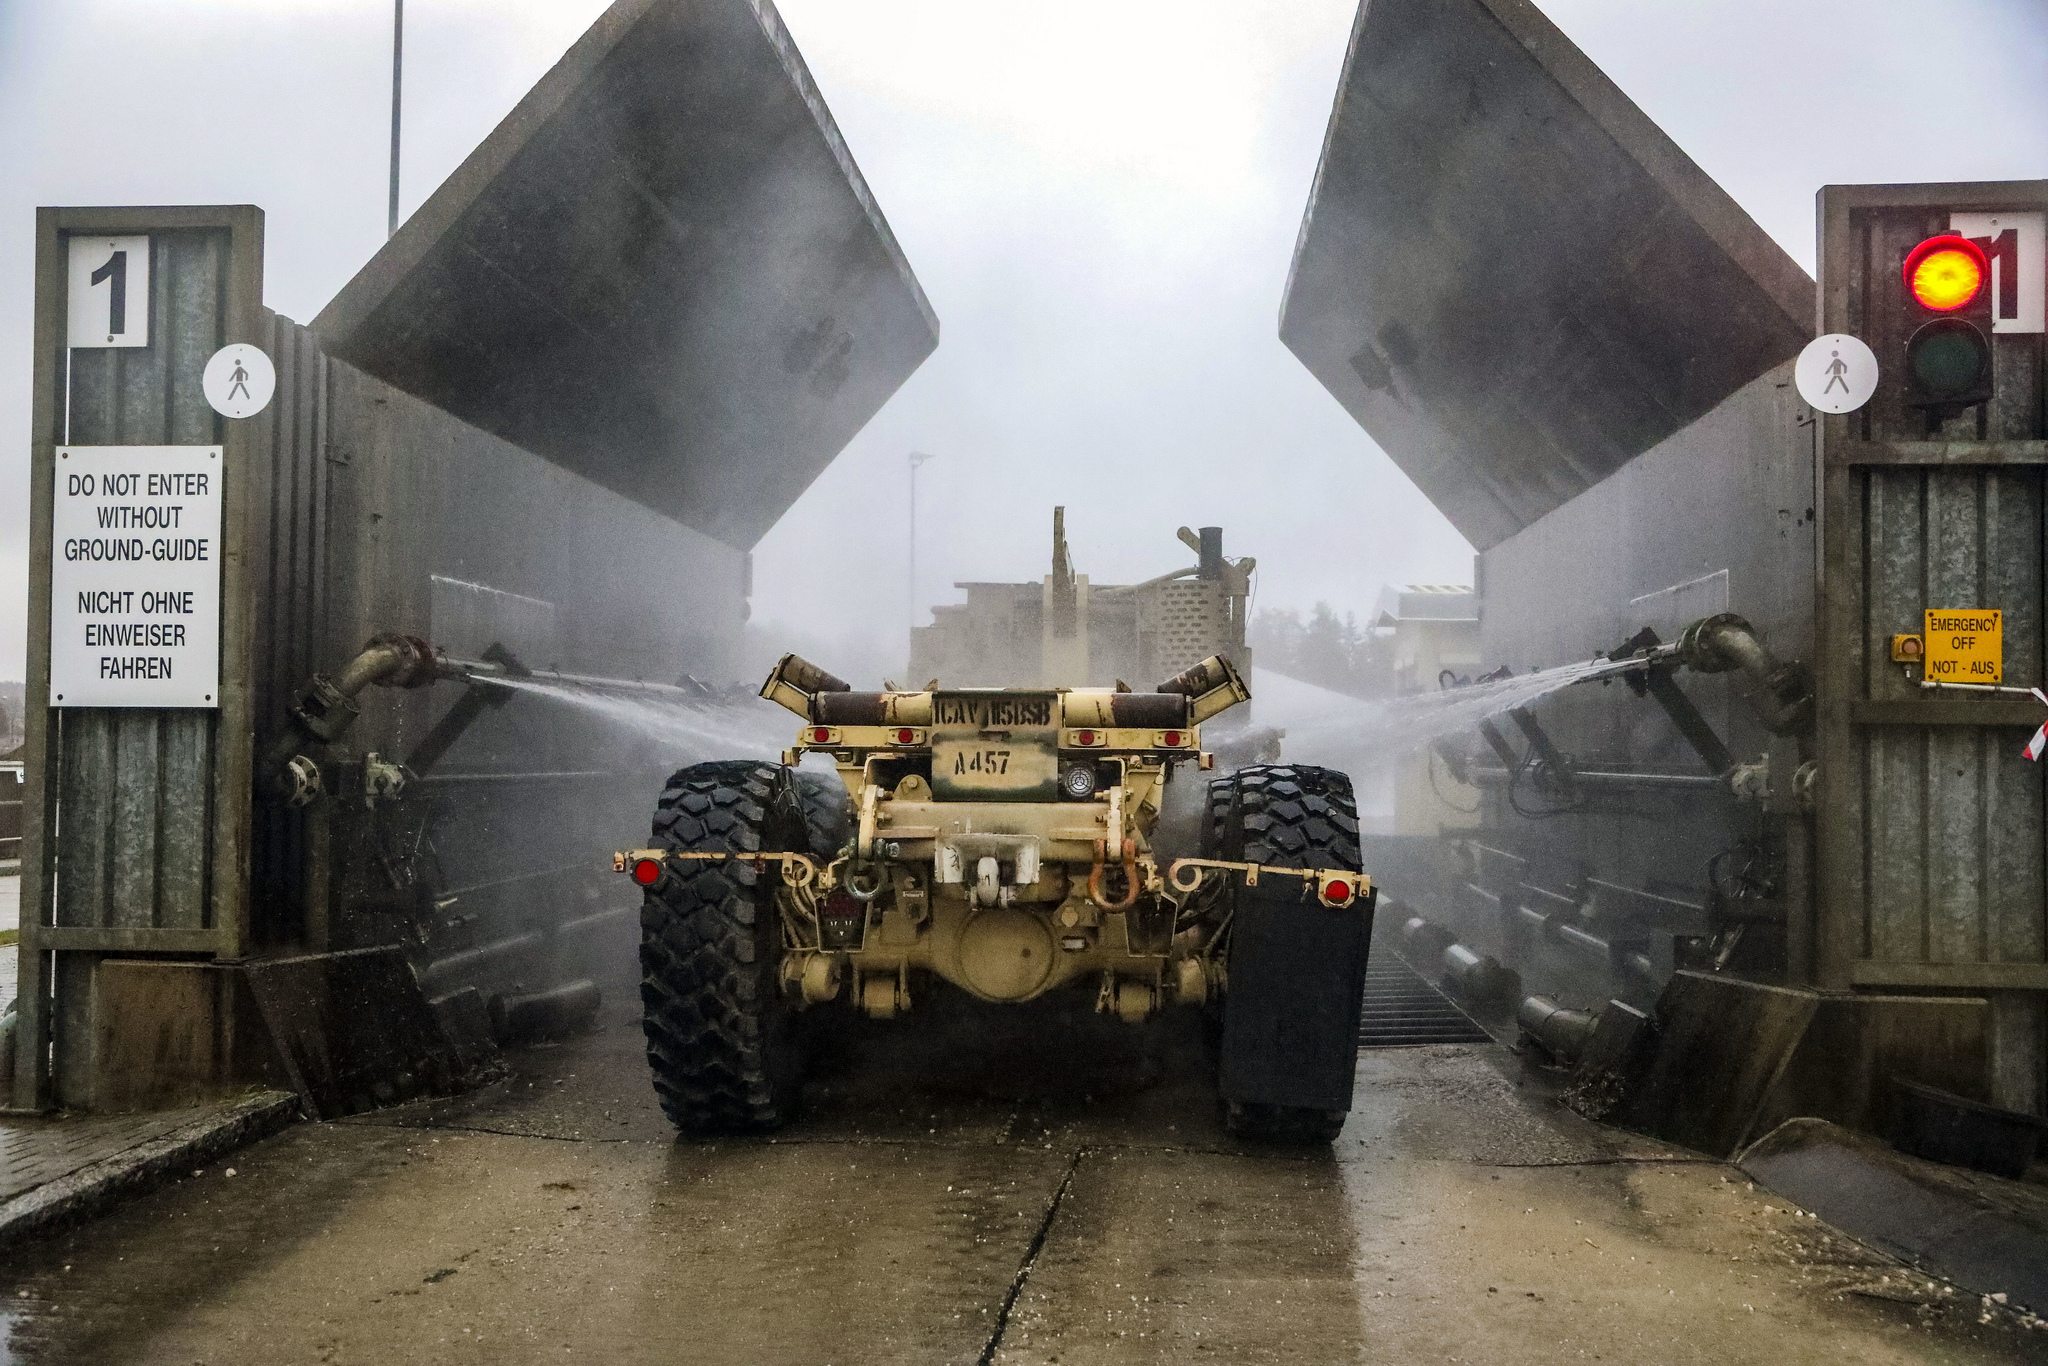 A soldier mans his vehicles as it is cleaned in the wash rack at Camp Aachen in Grafenwoehr, Germany Jan. 7, 2019. (Staff Sgt. Ron Lee/Army National Guard)